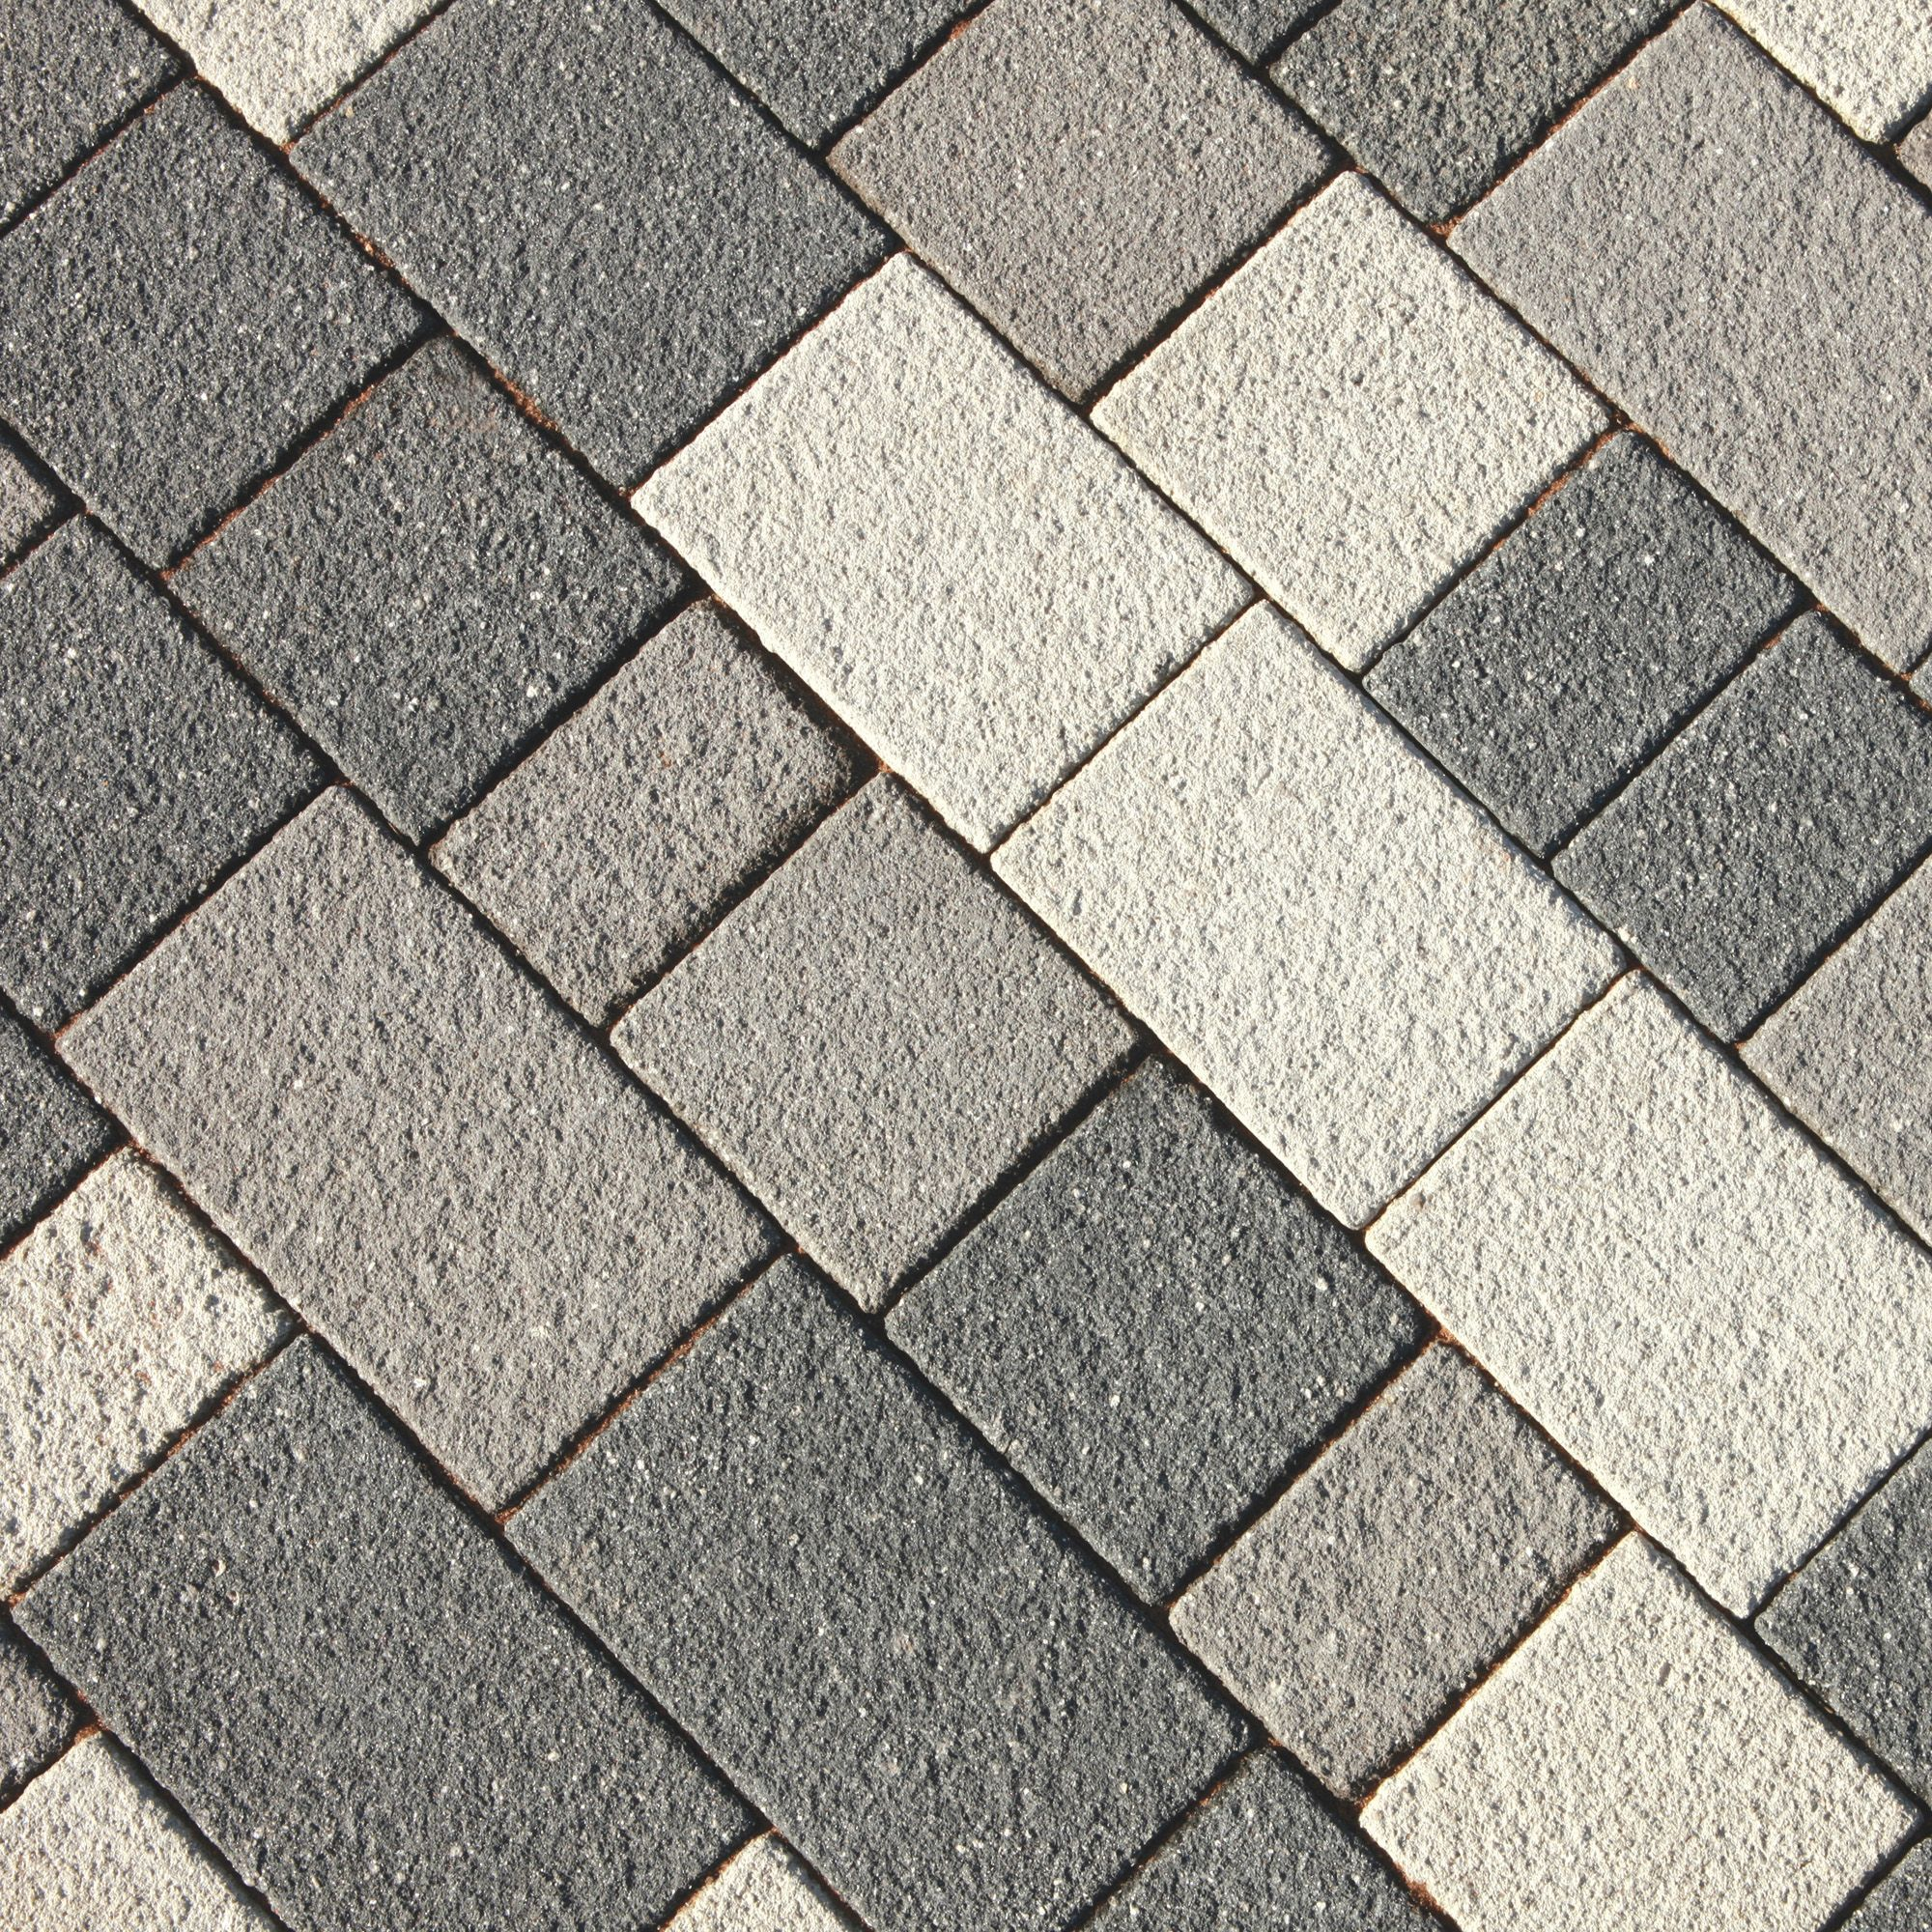 Silver Grey Panache Textured Mixed Size Block Paving Pack